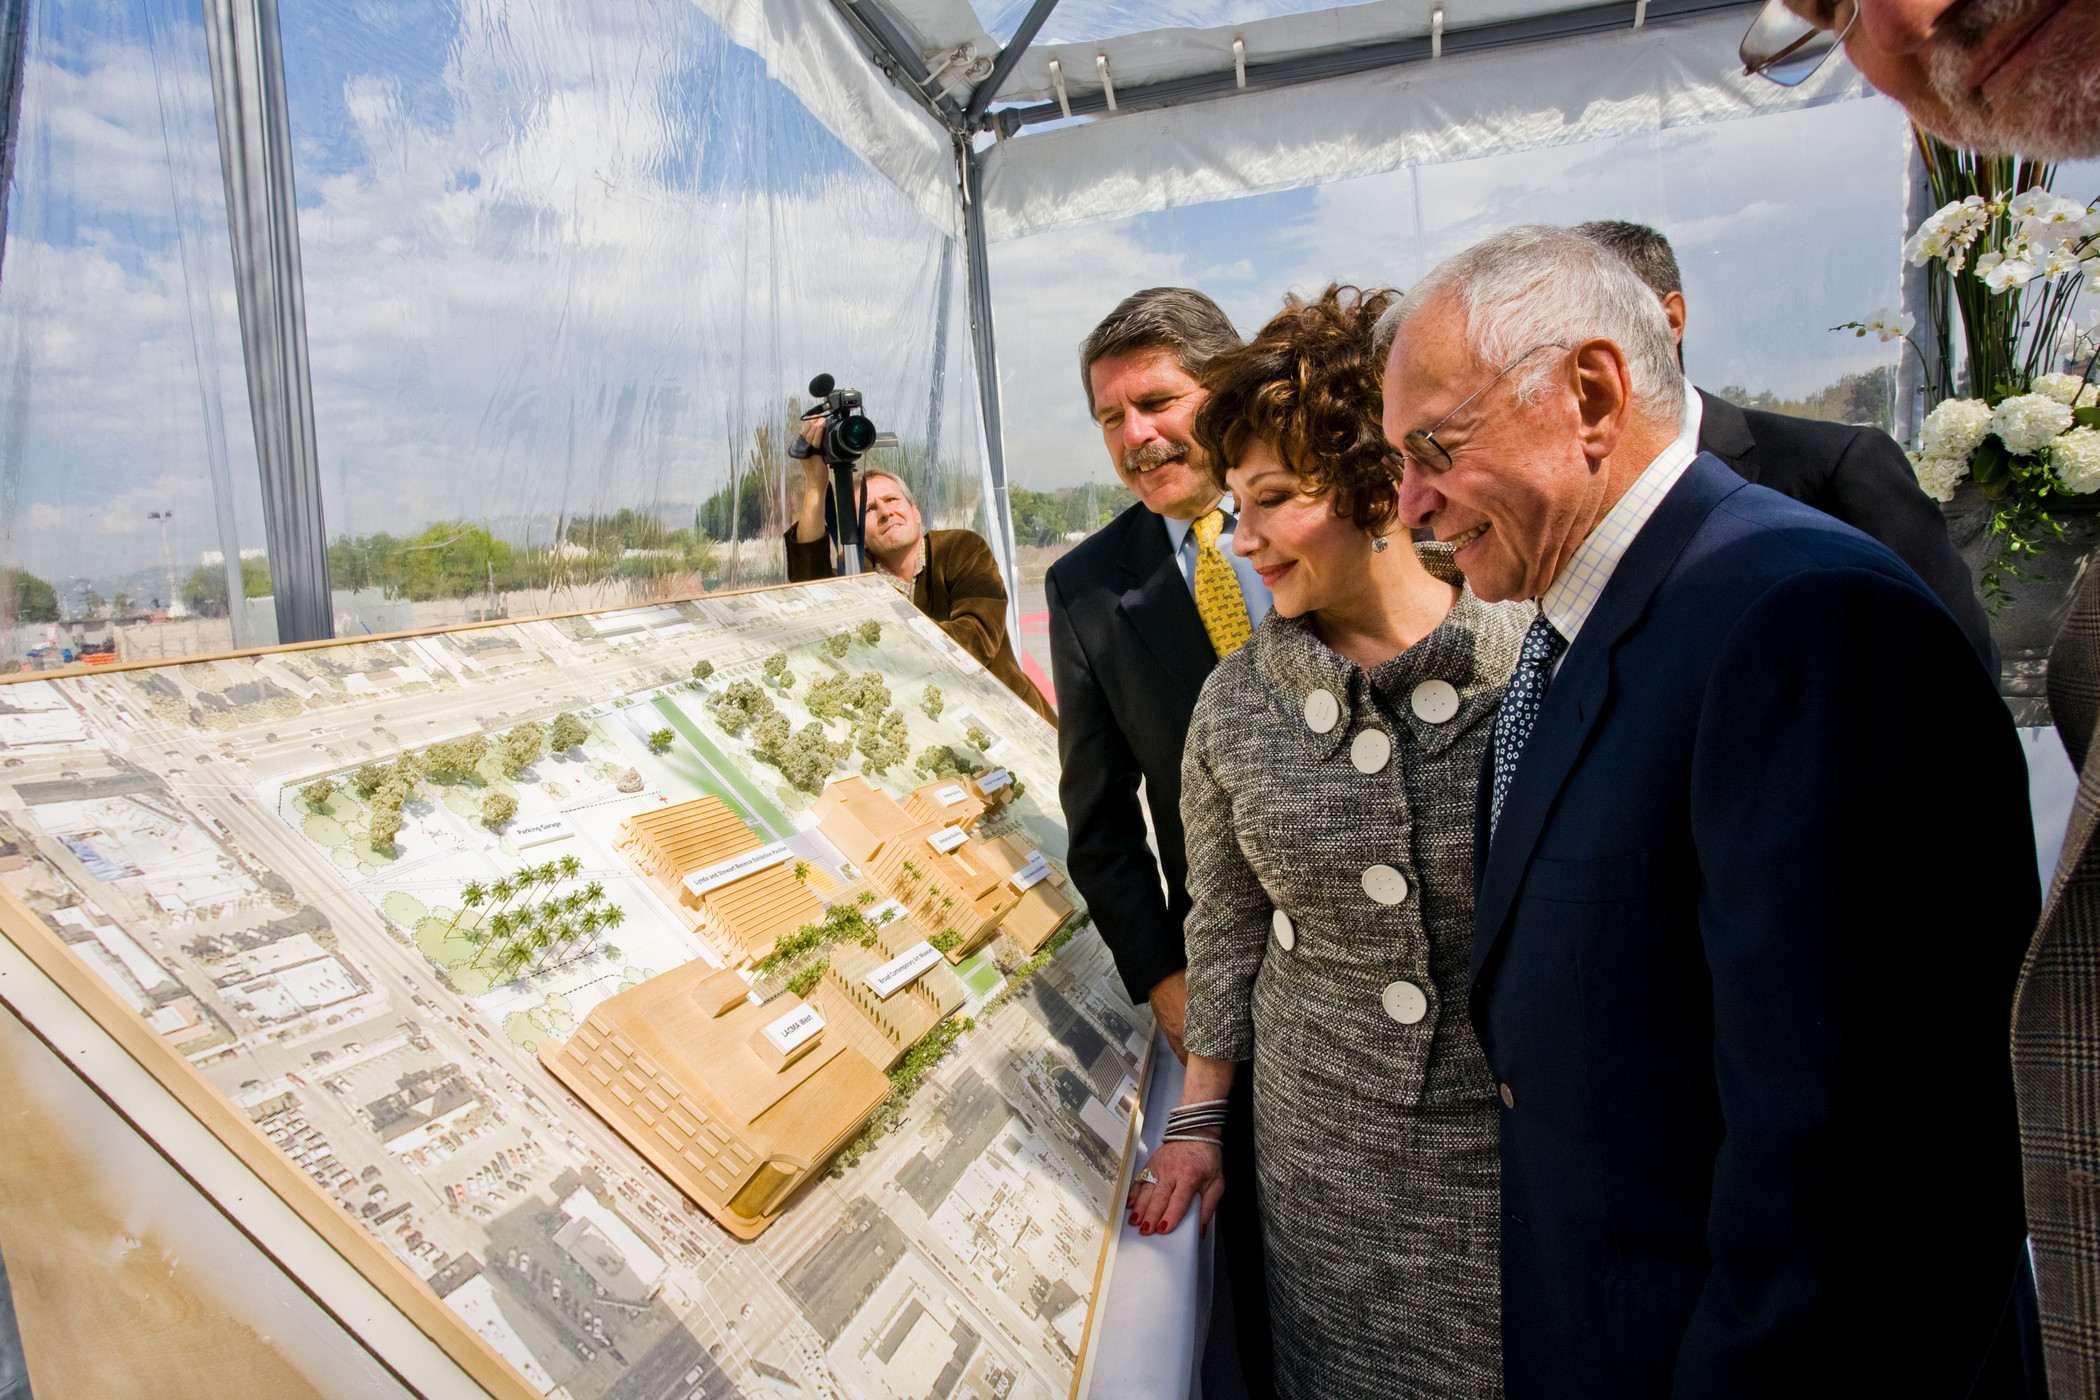 County Supervisor Zev Yaroslavsky with Lynda and Stewart Resnick, press conference for the Lynda and Stewart Resnick Exhibition Pavilion, 2008